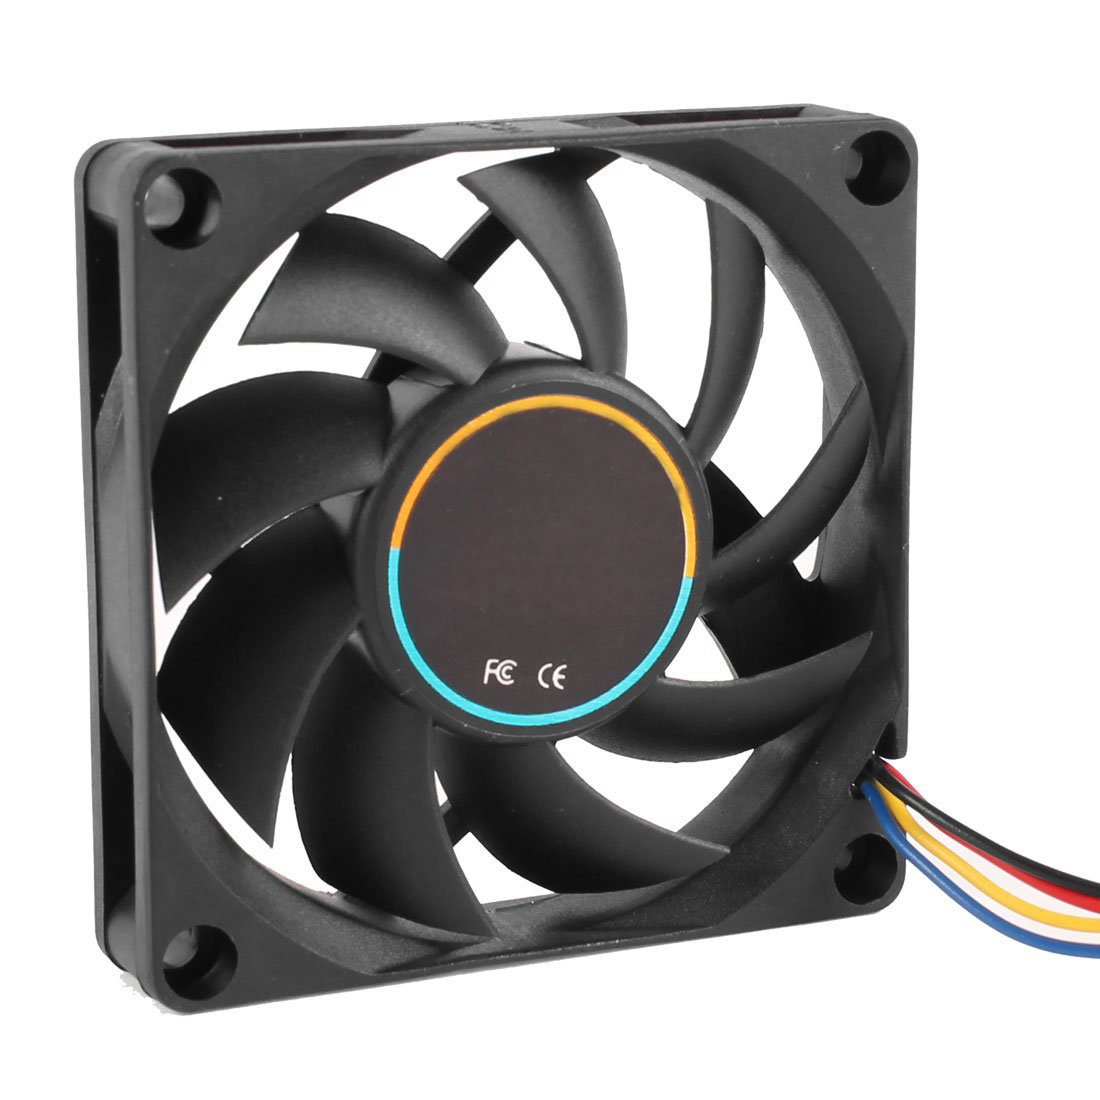 PROMOTION! Hot 70mmx15mm 12V 4 Pins PWM PC Computer Case CPU Cooler Cooling Fan Black